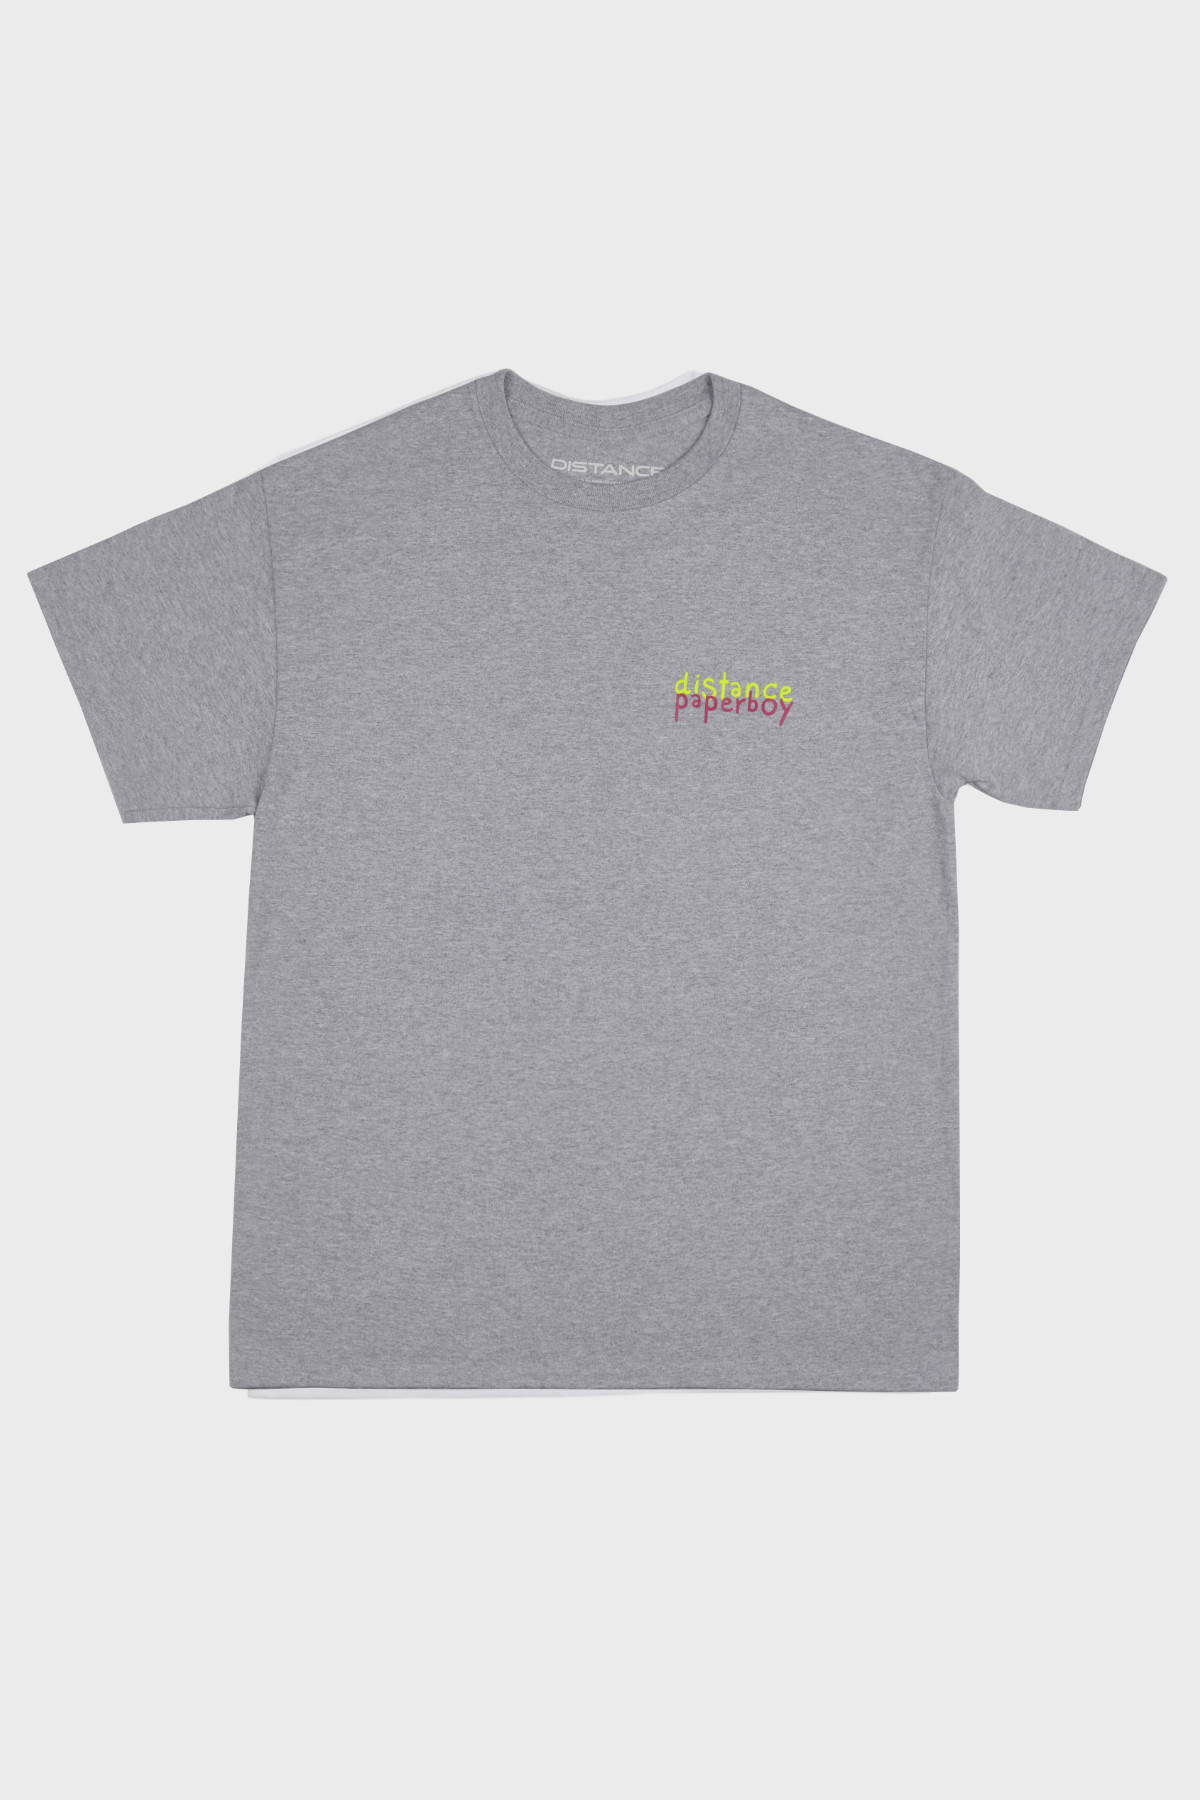 Distance x Paperboy - SS tee - grey